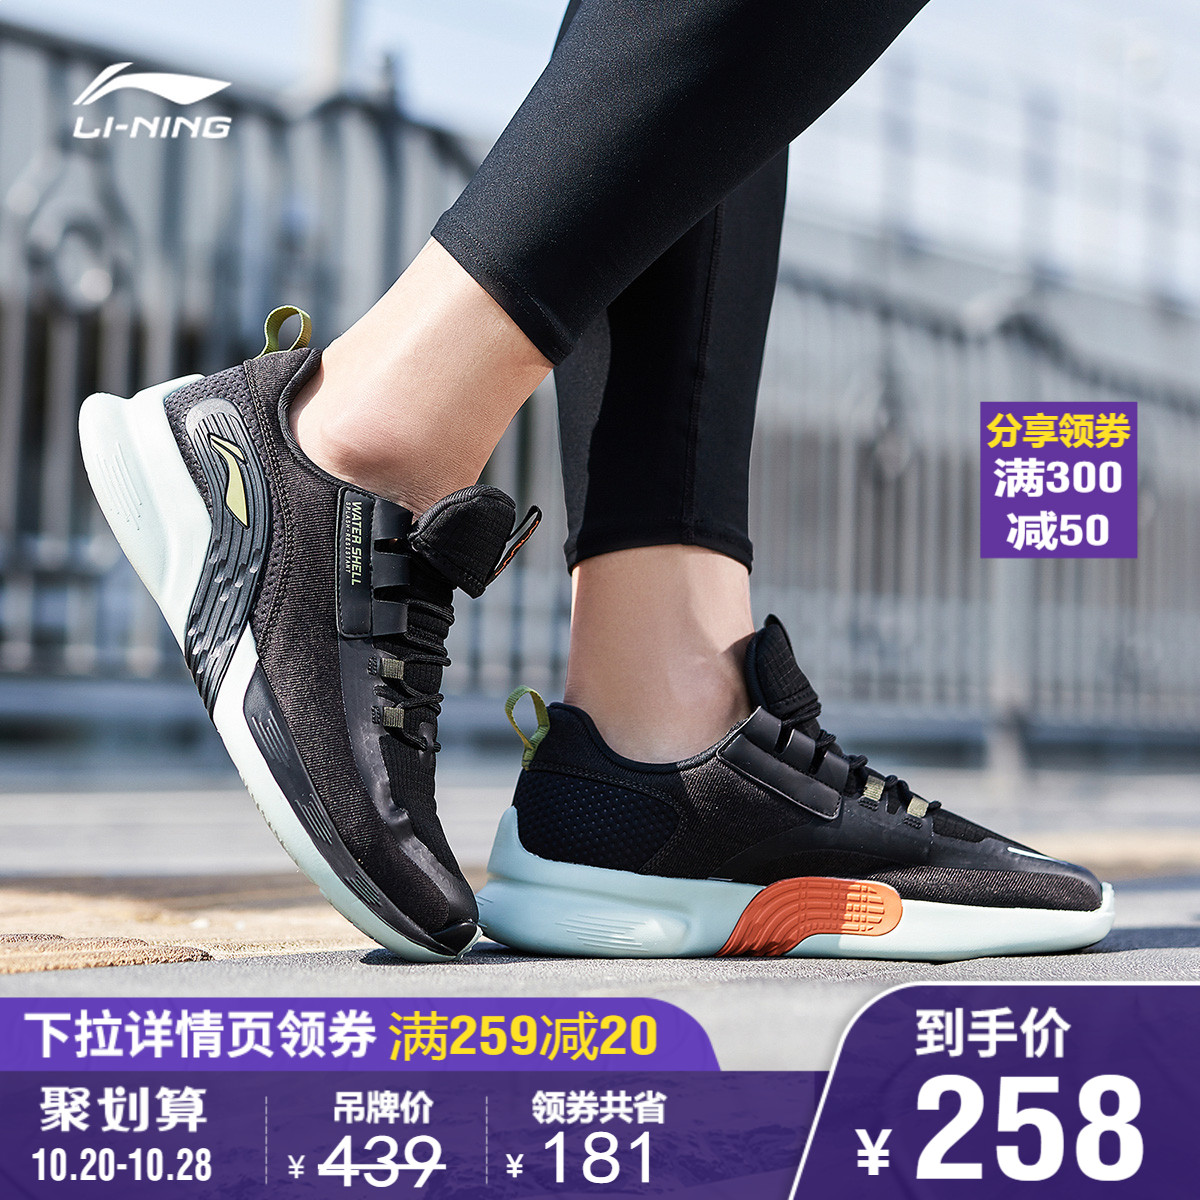 Li Ning running shoes men's shoes official winter CFR windproof, water-resistant, wear-resistant, non-slip cloud running shoes sports shoes-1